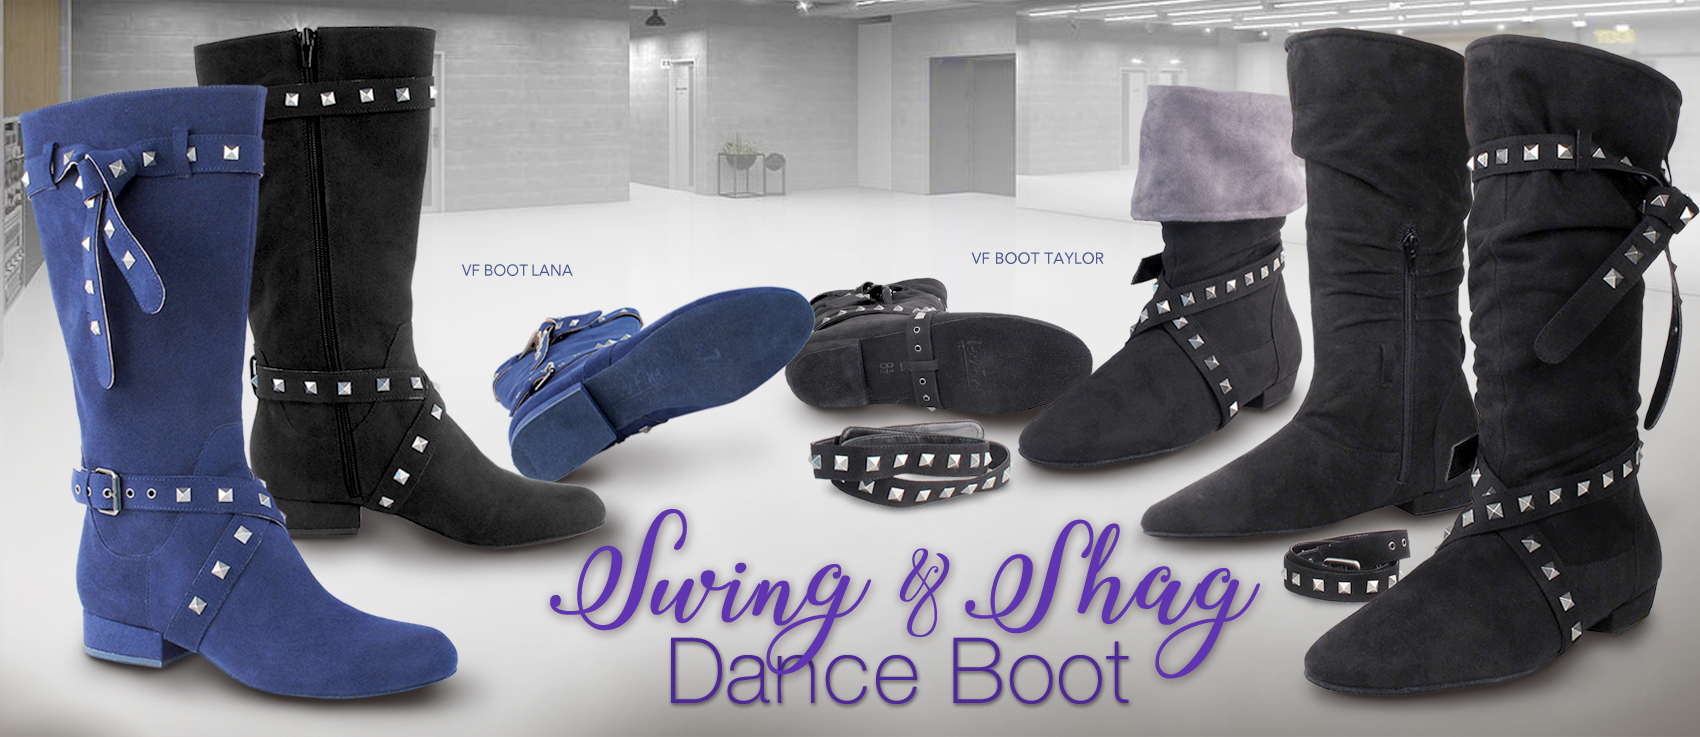 Very Fine Dancesport Shoes Company The Manufacturer Of